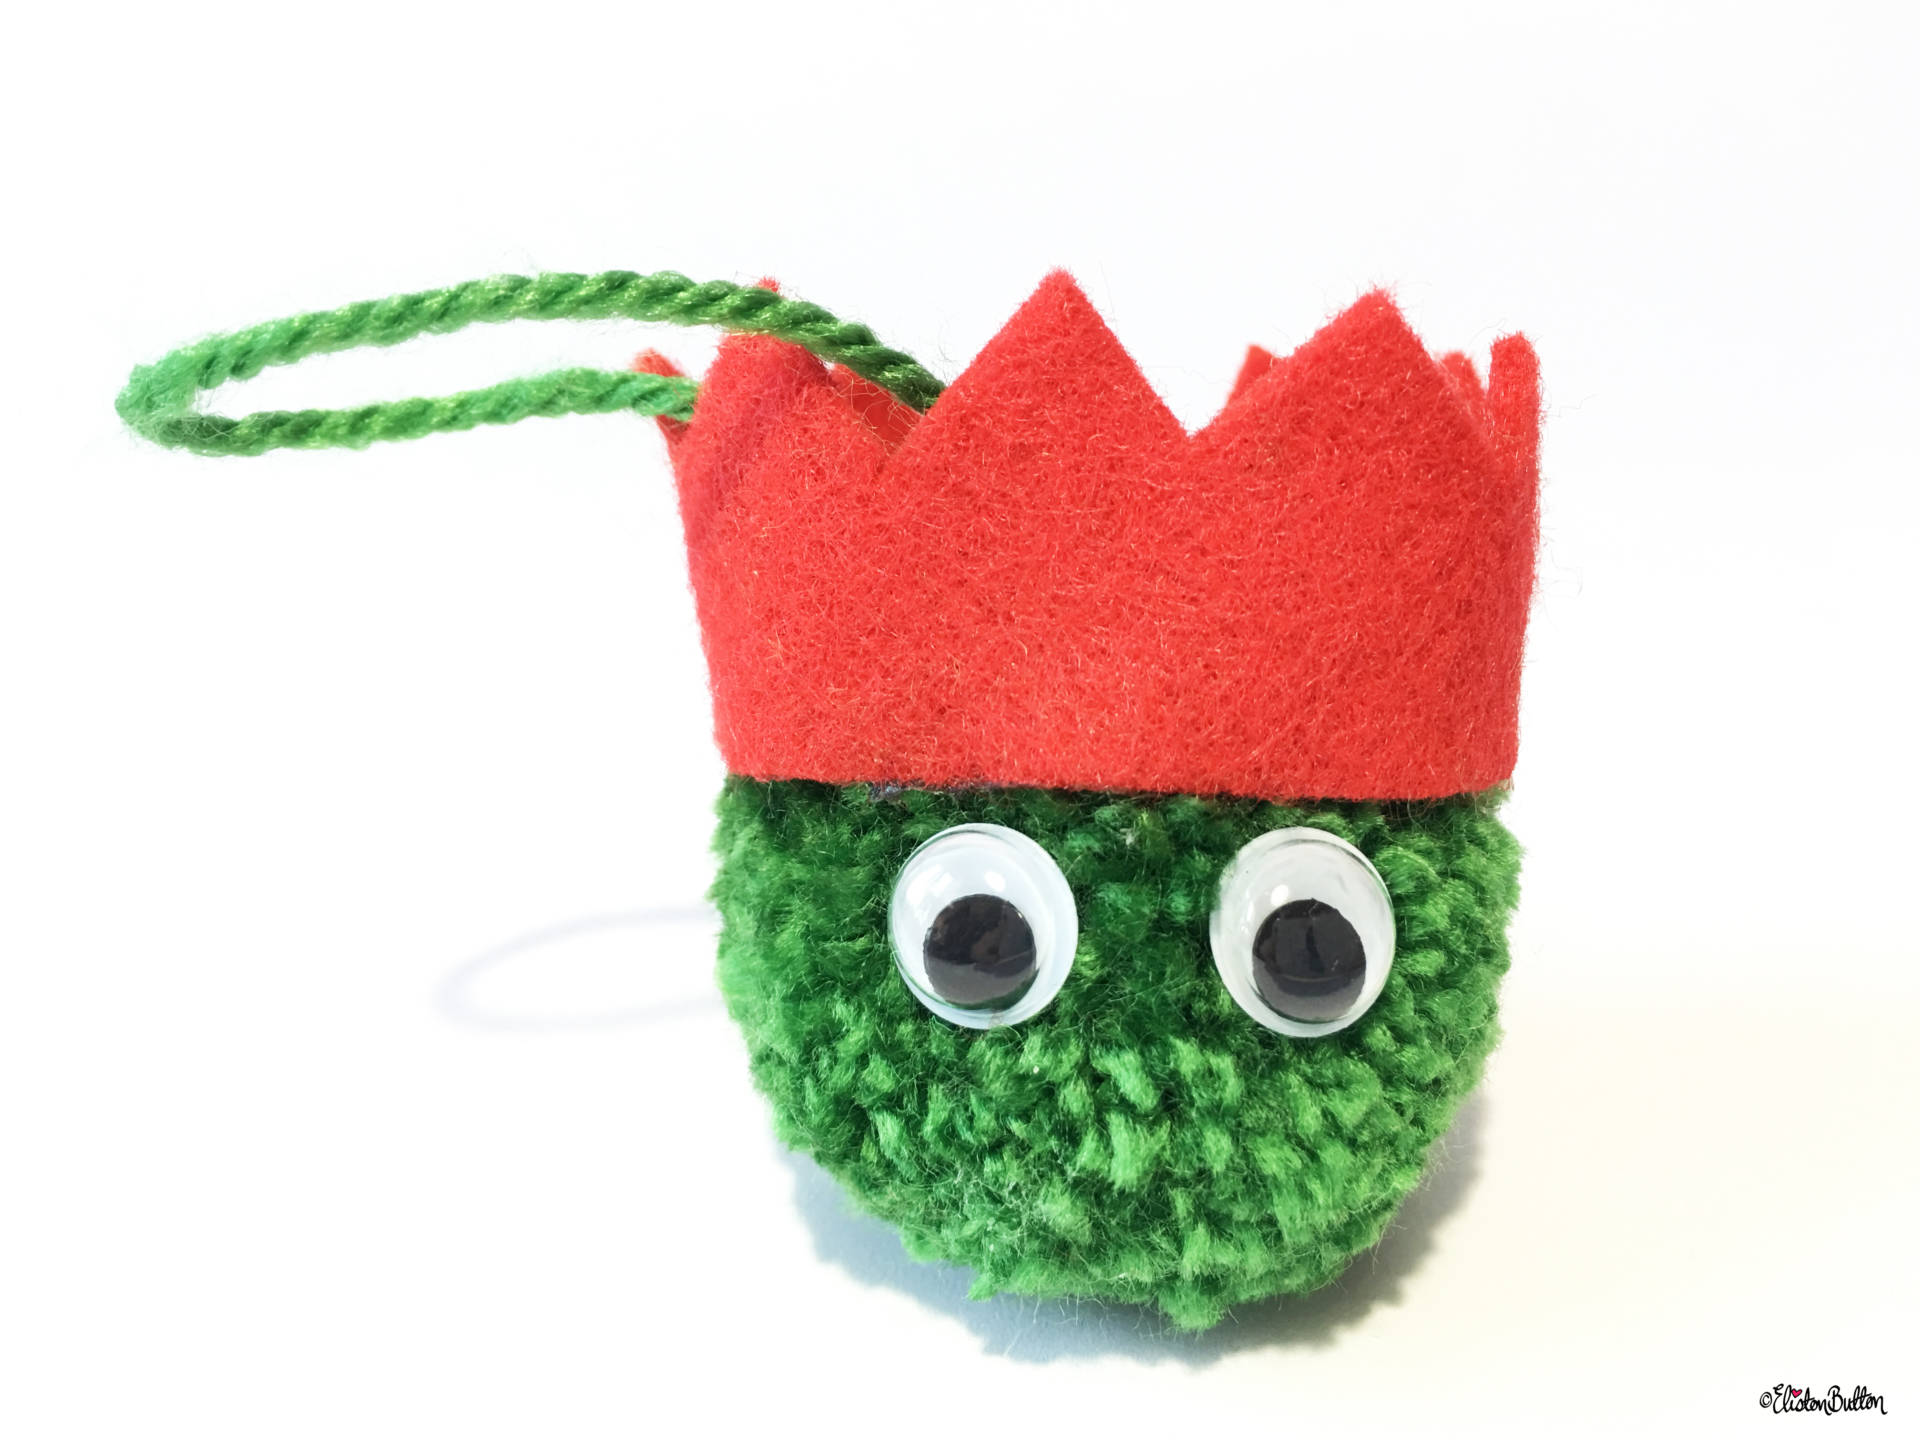 Dark Green, Red Party Hat Pom Pom Sprout Christmas Decoration - Create 30 - No. 8 & 9 - Christmas Sprout Garland and Decorations at www.elistonbutton.com - Eliston Button - That Crafty Kid – Art, Design, Craft & Adventure.